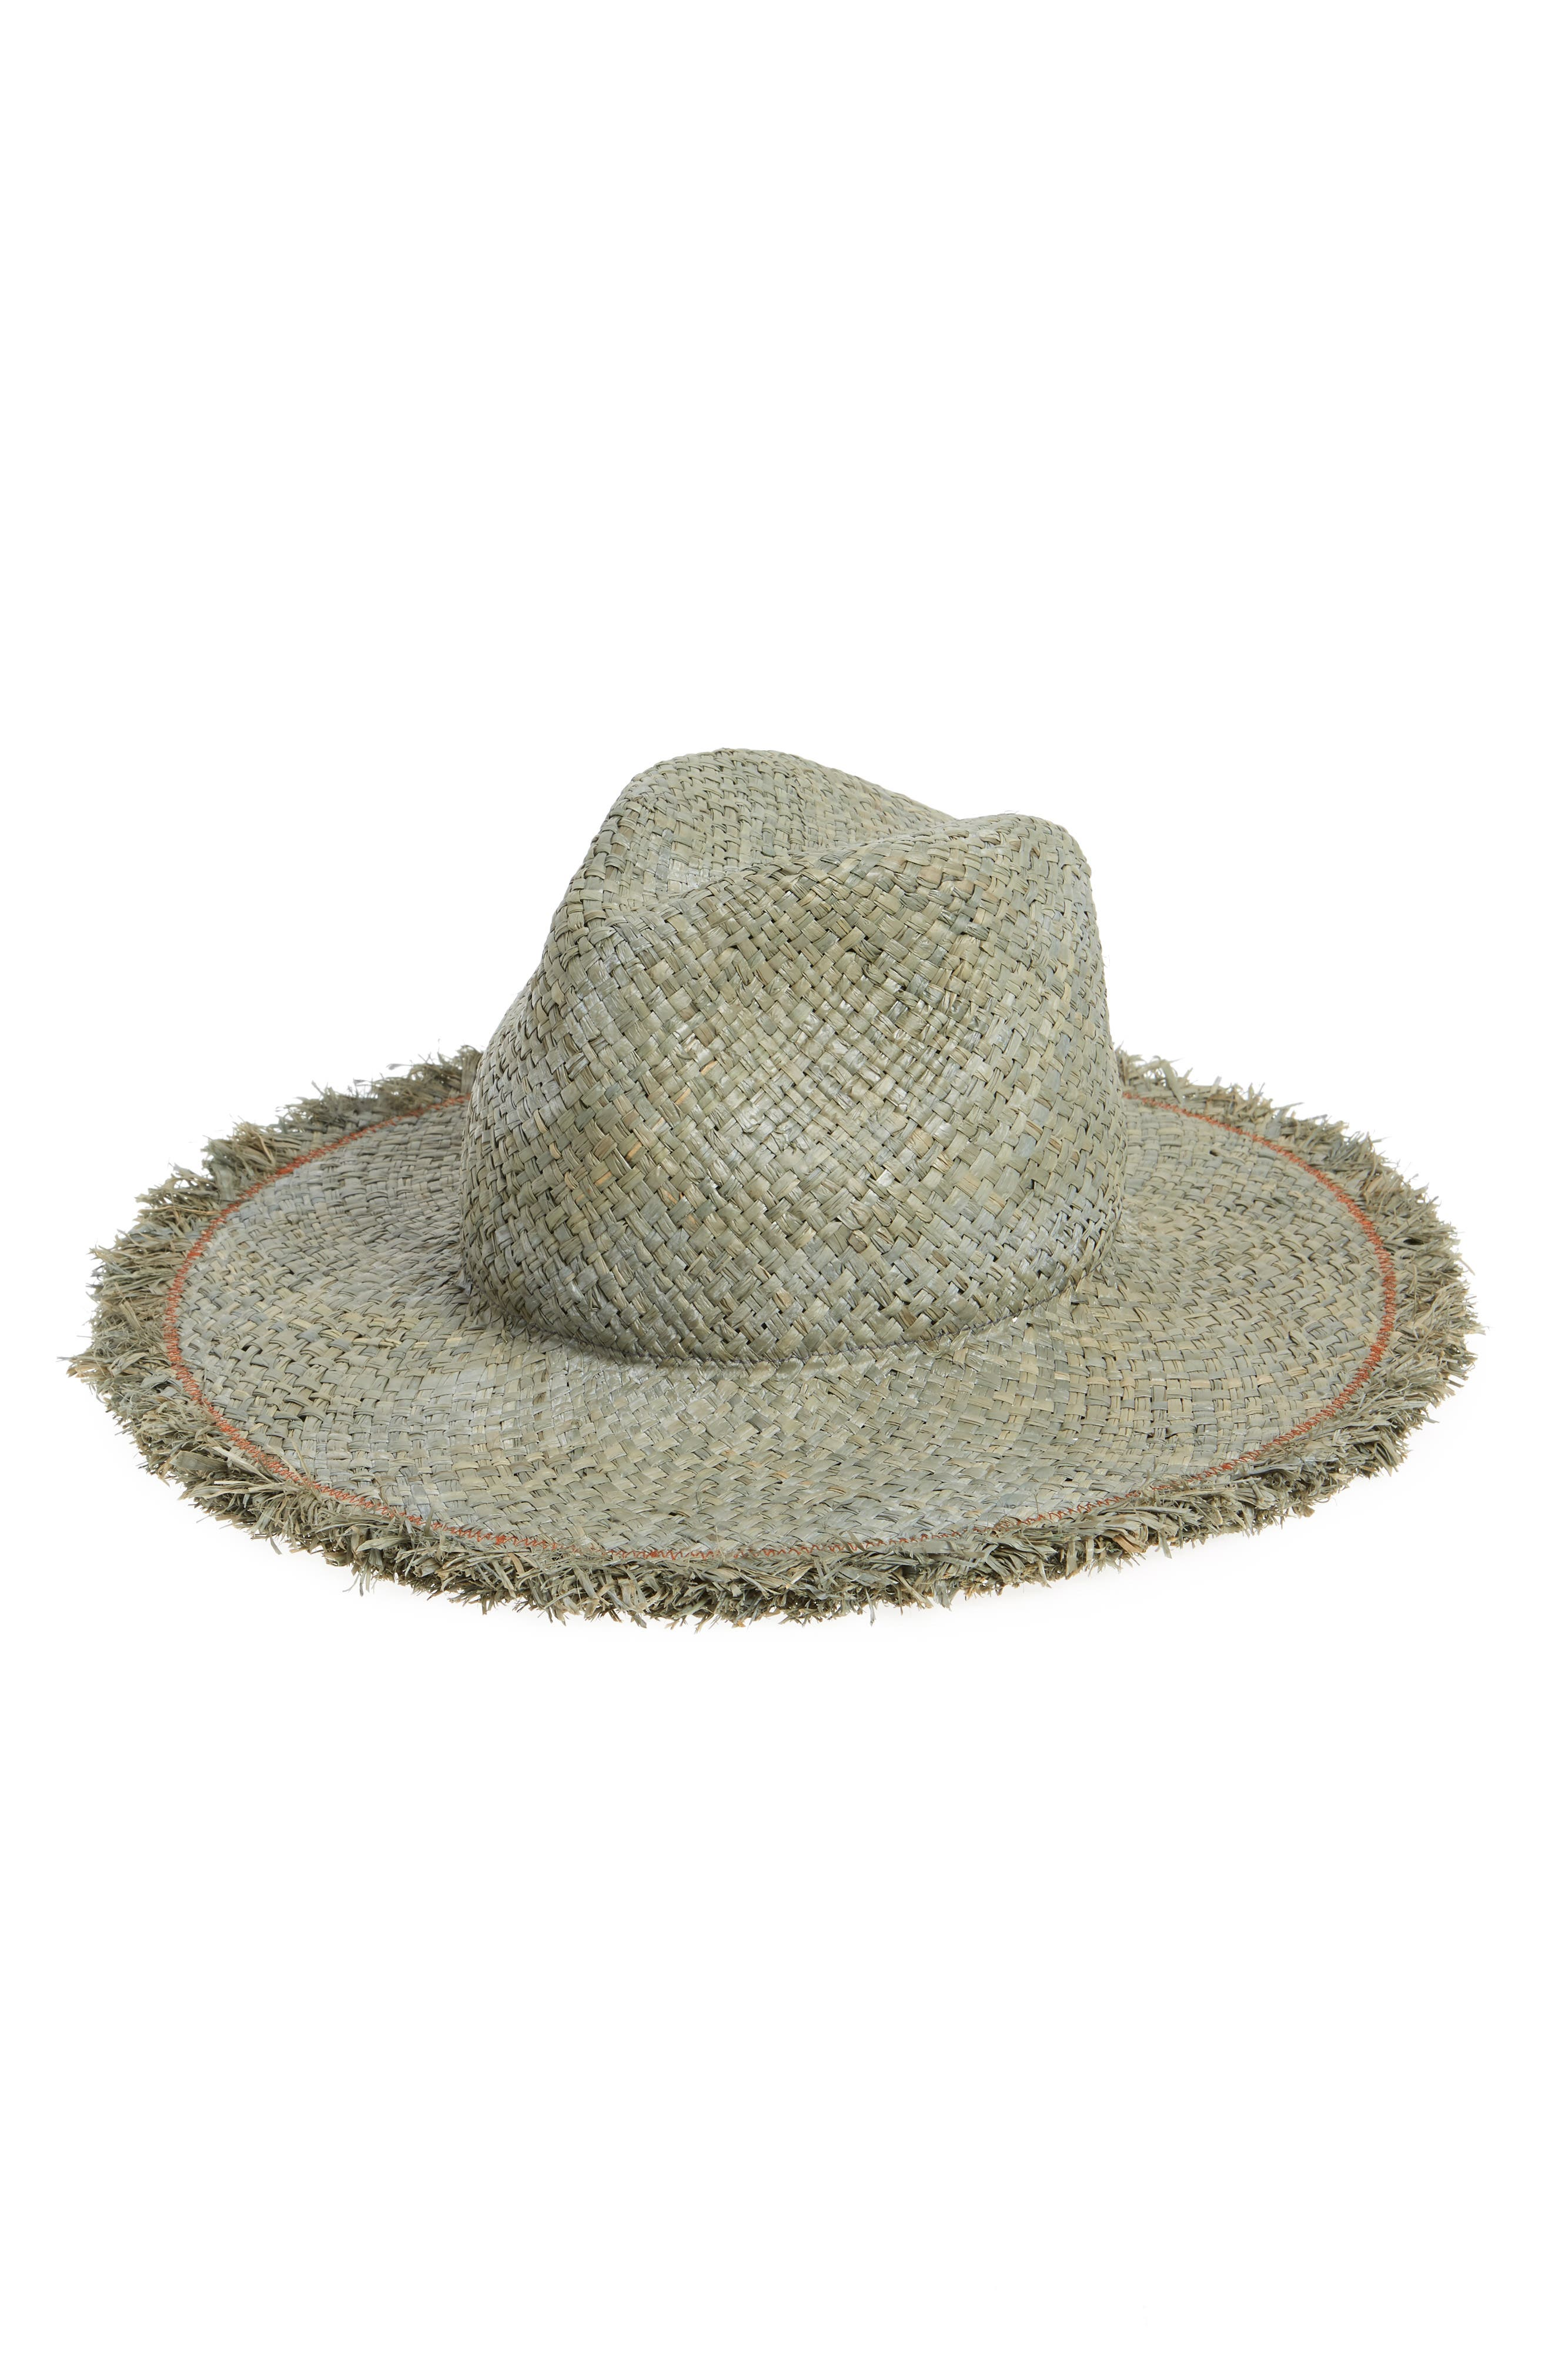 LOLA HATS Large Dad'S Raffia Hat - Green in Sage